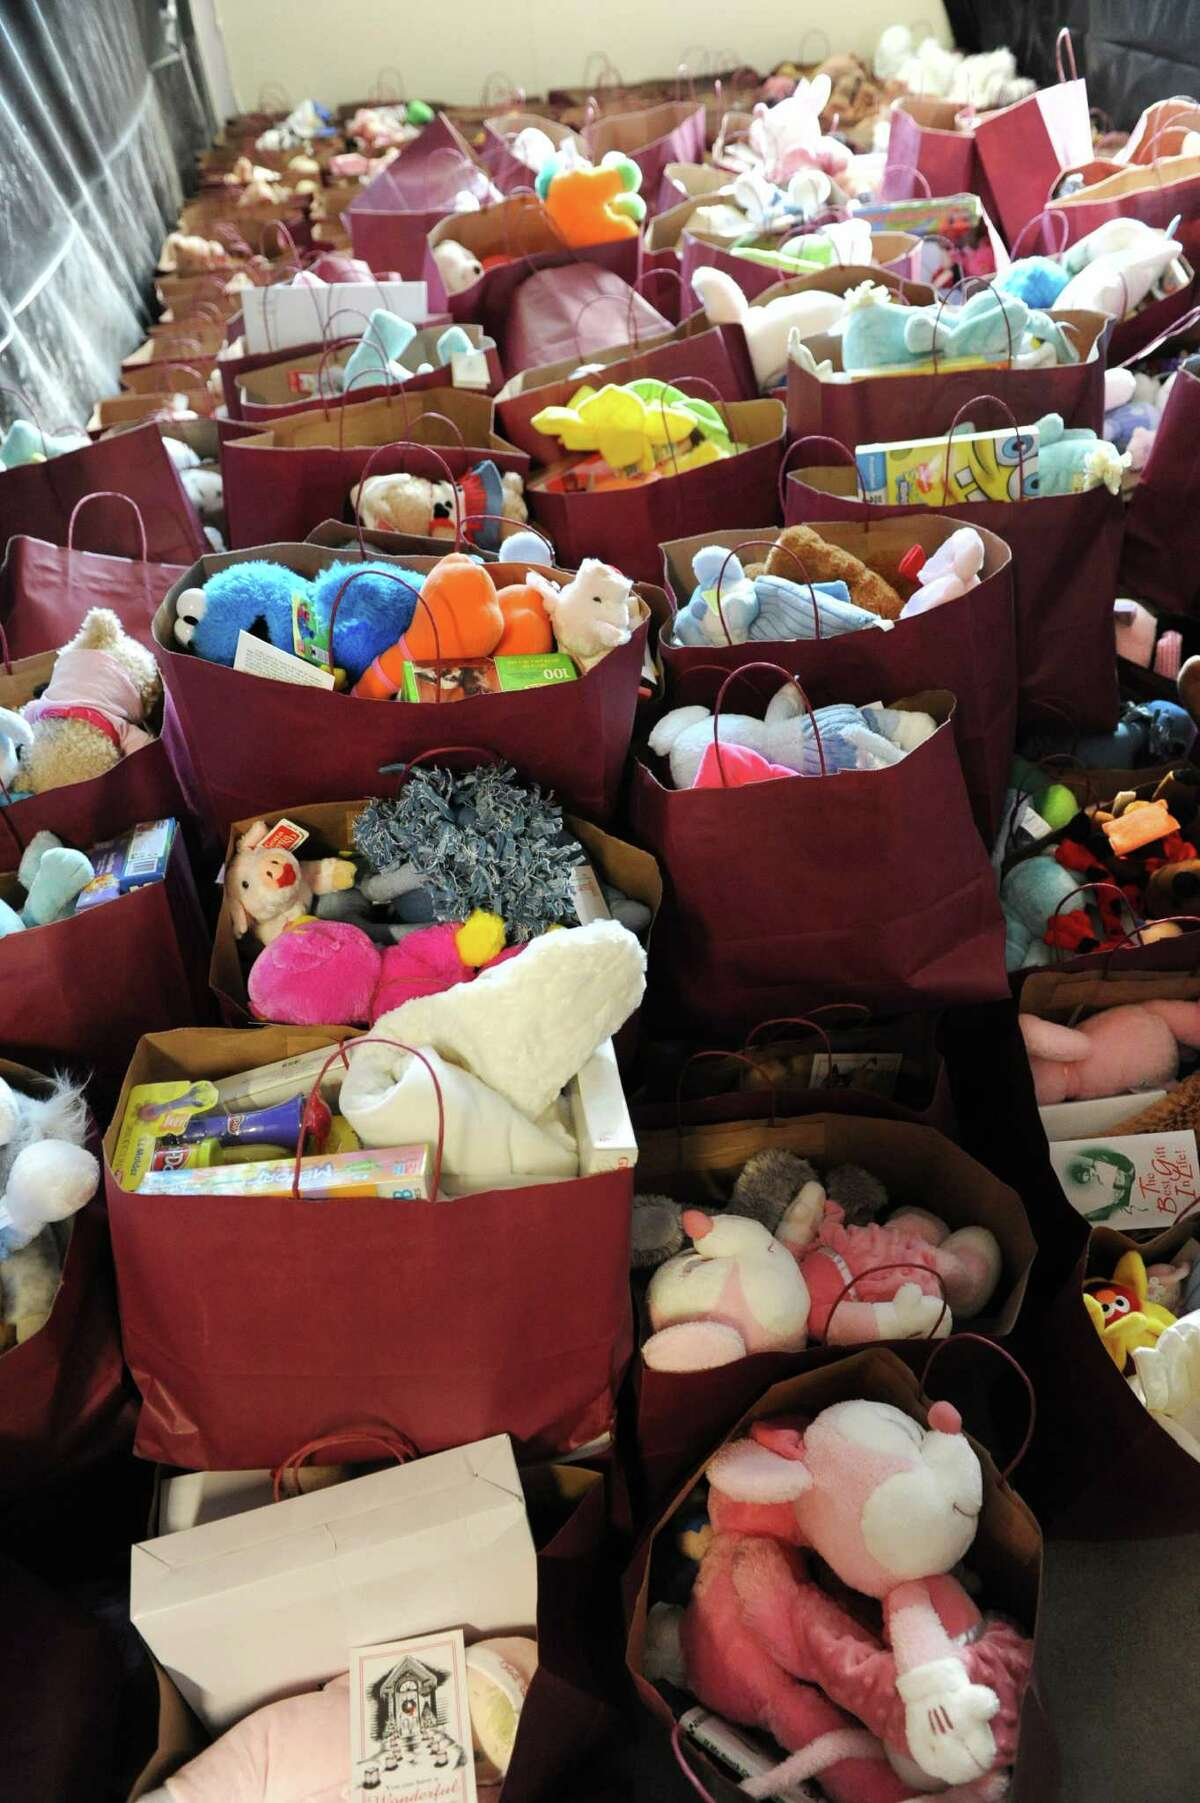 Hundreds of holiday gifts are ready to be given out for Christmas Day at the Capital City Rescue Mission Thursday Dec. 20, 2012 in Albany, N.Y. Presents were separated by age group and gender. (Lori Van Buren / Times Union)